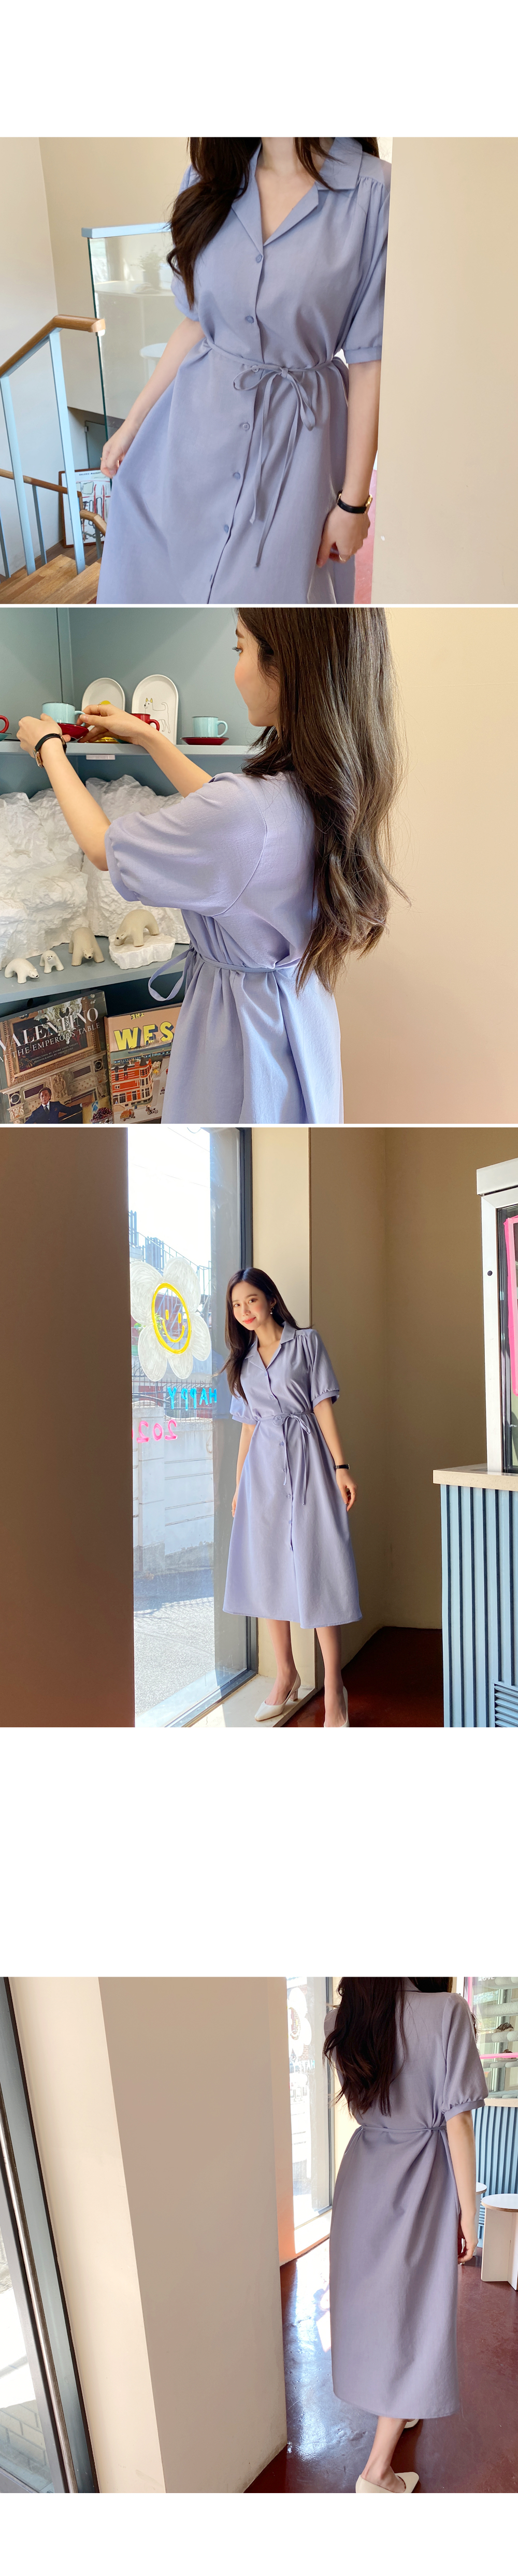 Fiesta Shirring Shirt Long Dress